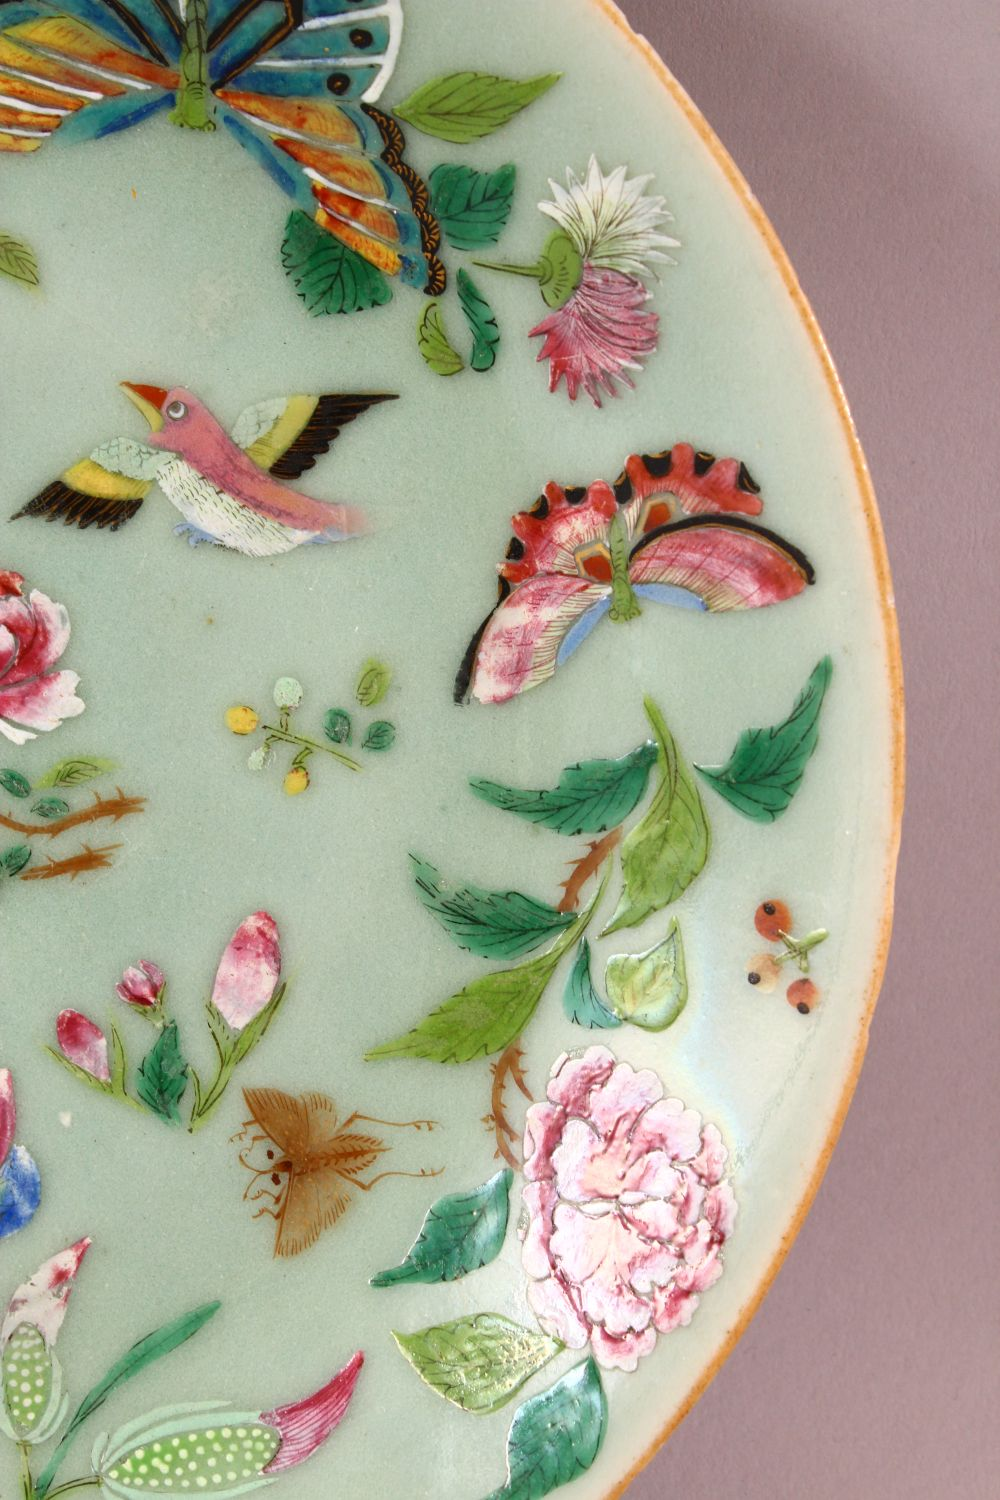 A 19TH CENTURY CHINESE CELADON FAMILLE ROSE PORCELAIN PLATE, With decoration of birds, flowers and - Image 5 of 7